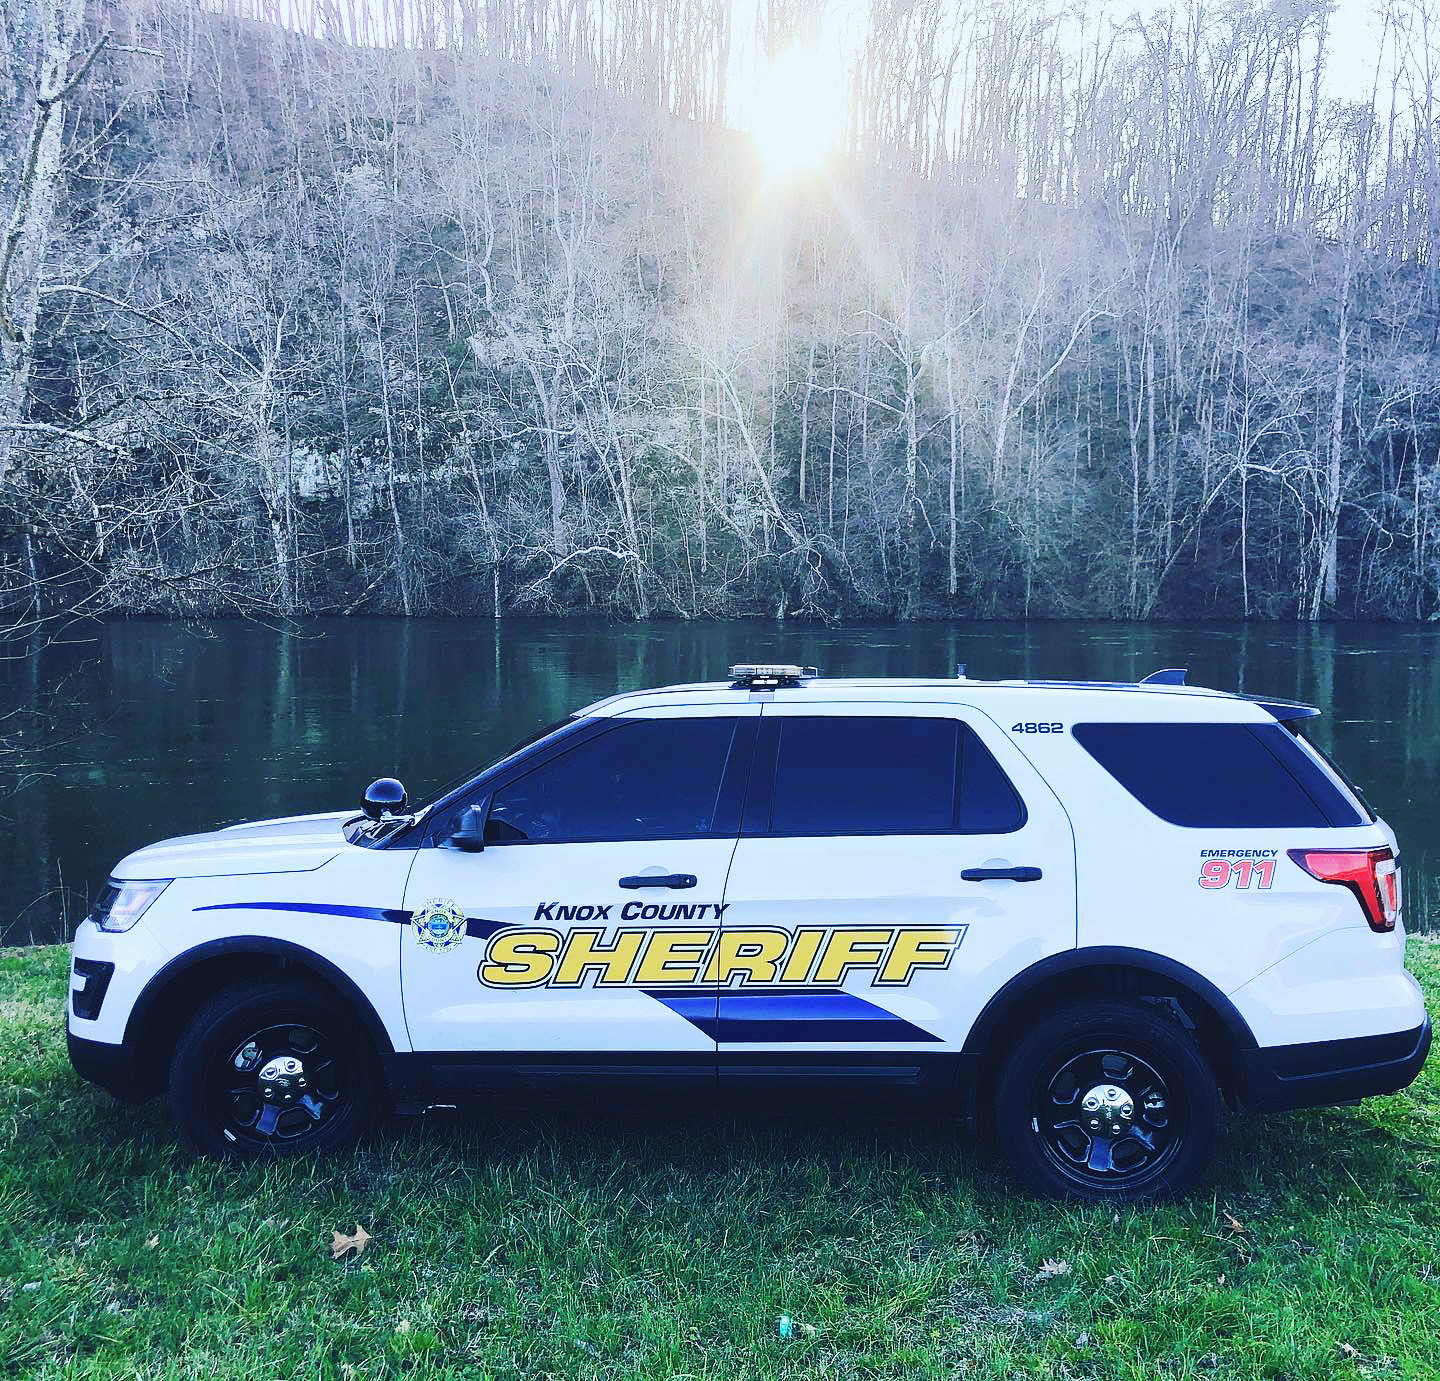 Sheriff Marked SUV parked on grass in front of lake